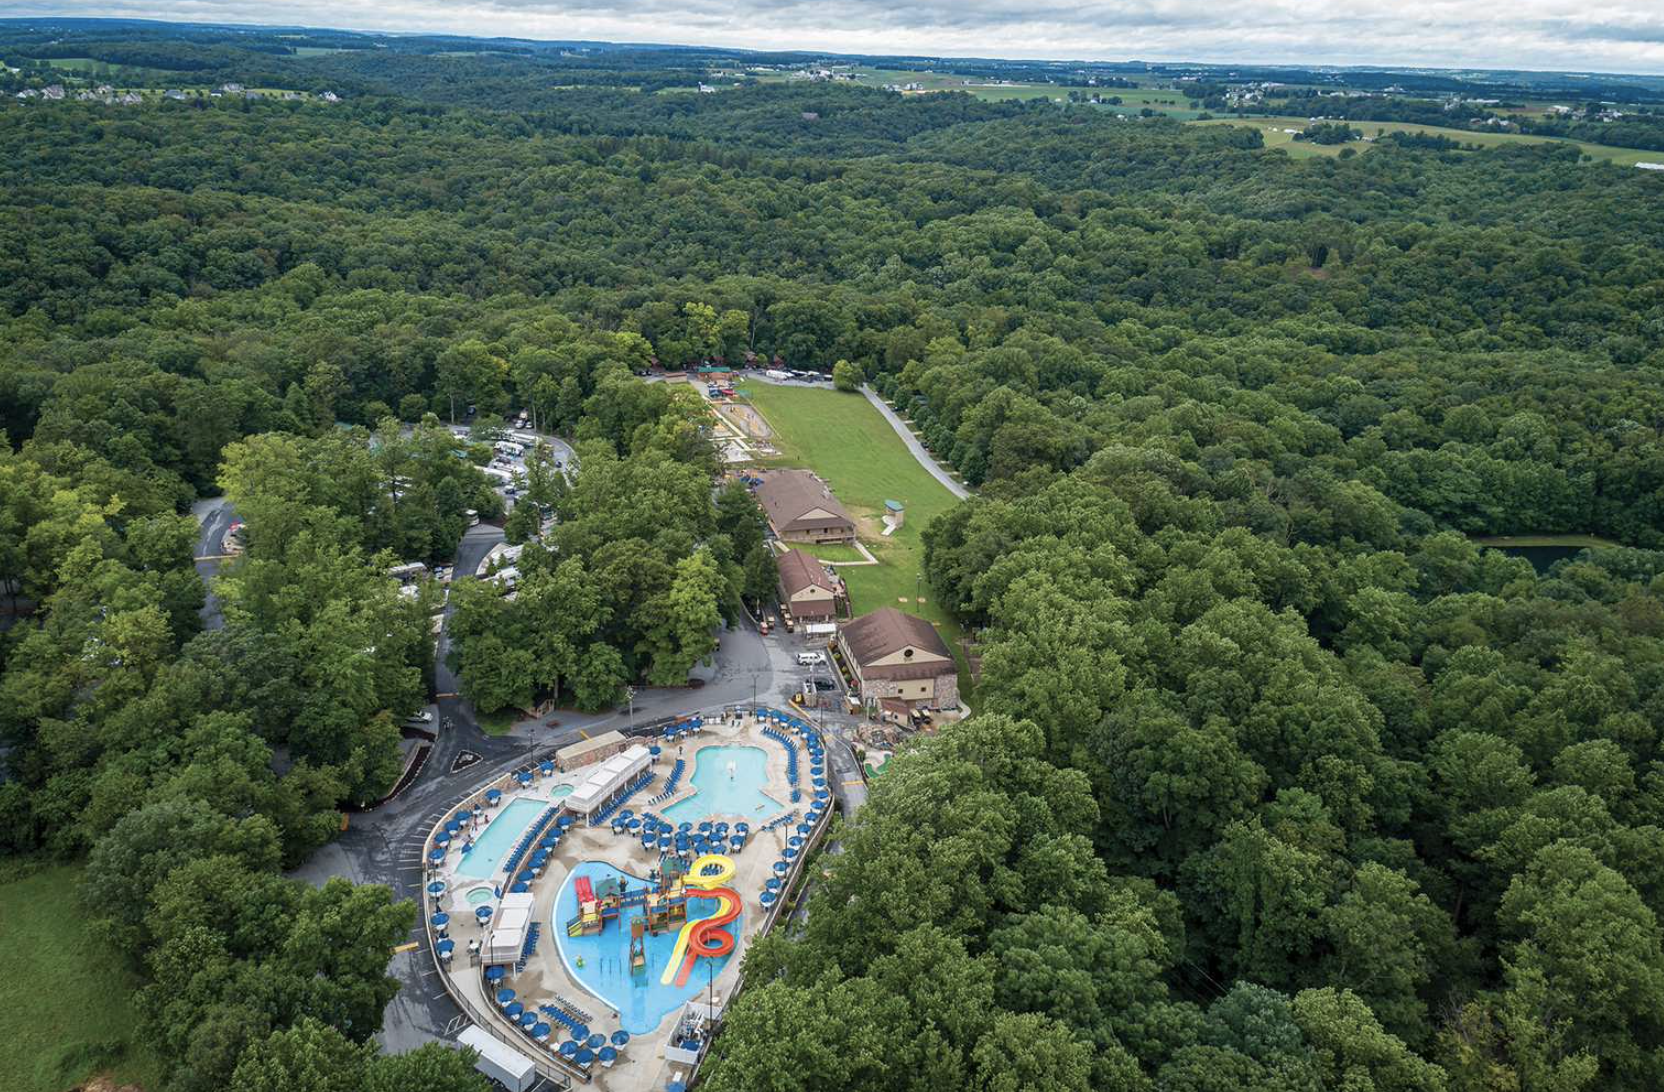 Aerial view of campground between lush woods with pool and water slide